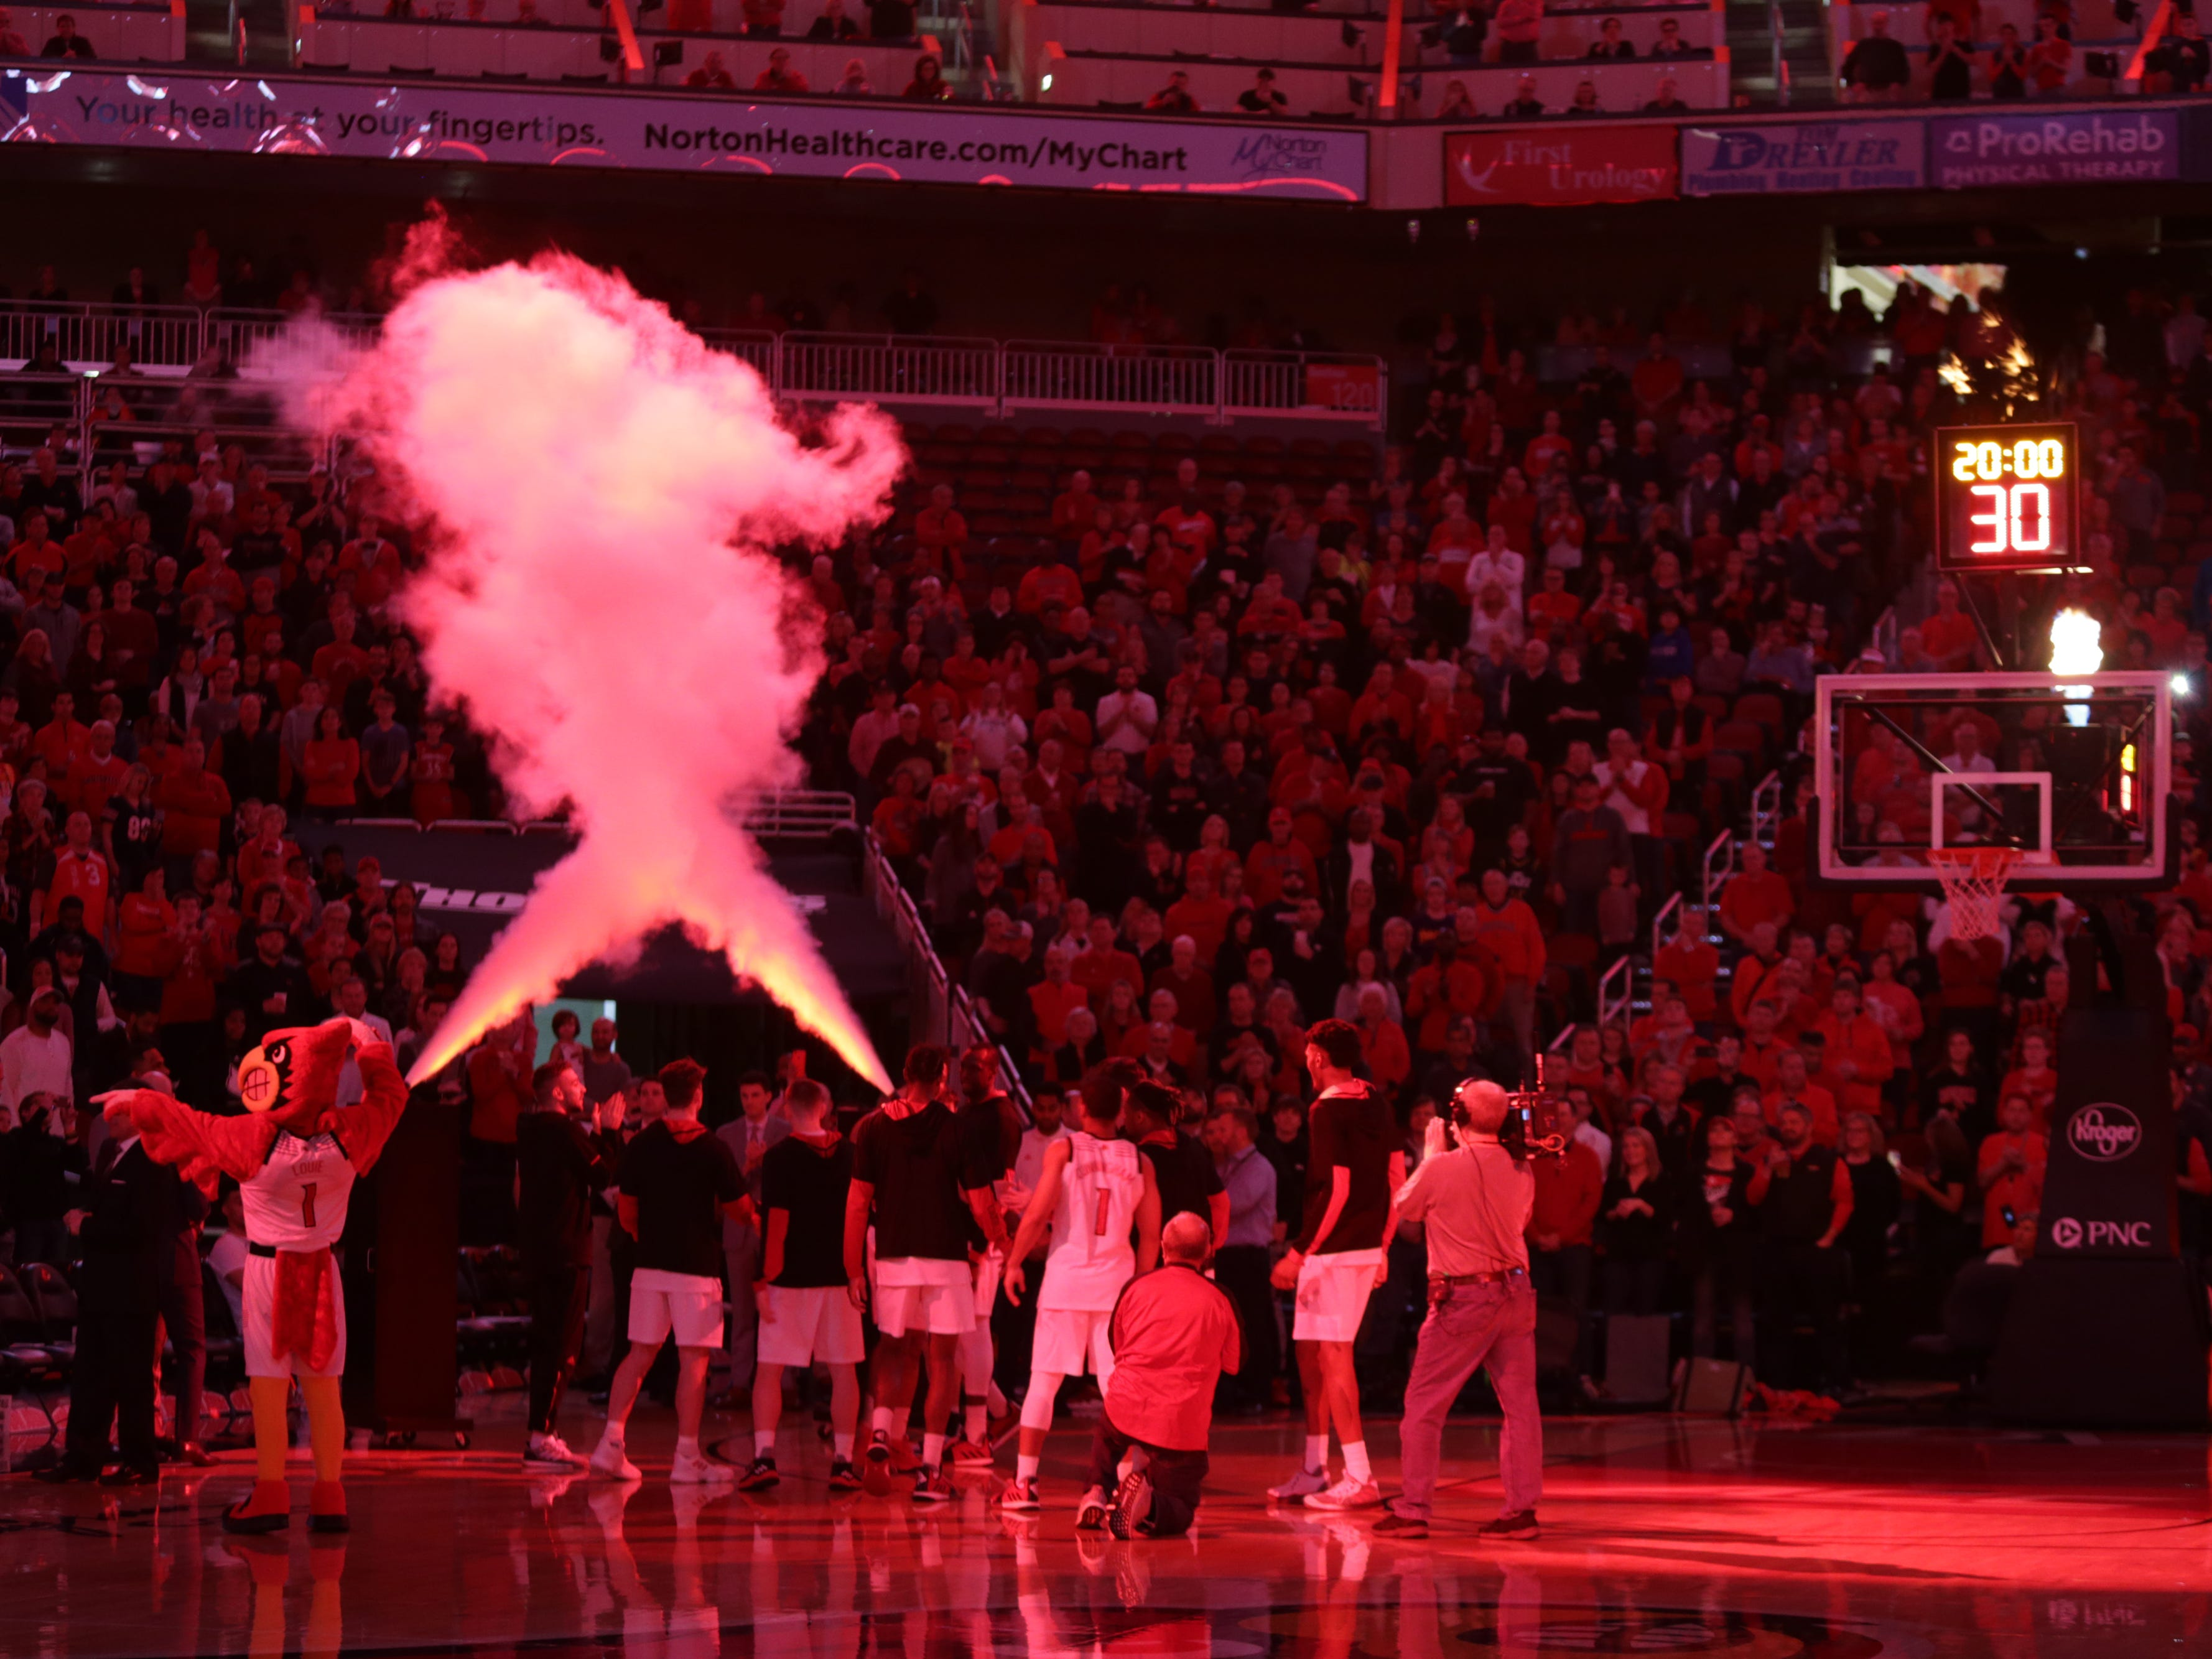 The University of Louisville's men basketball team is introduced before their game against Miami. Jan. 6, 2018.